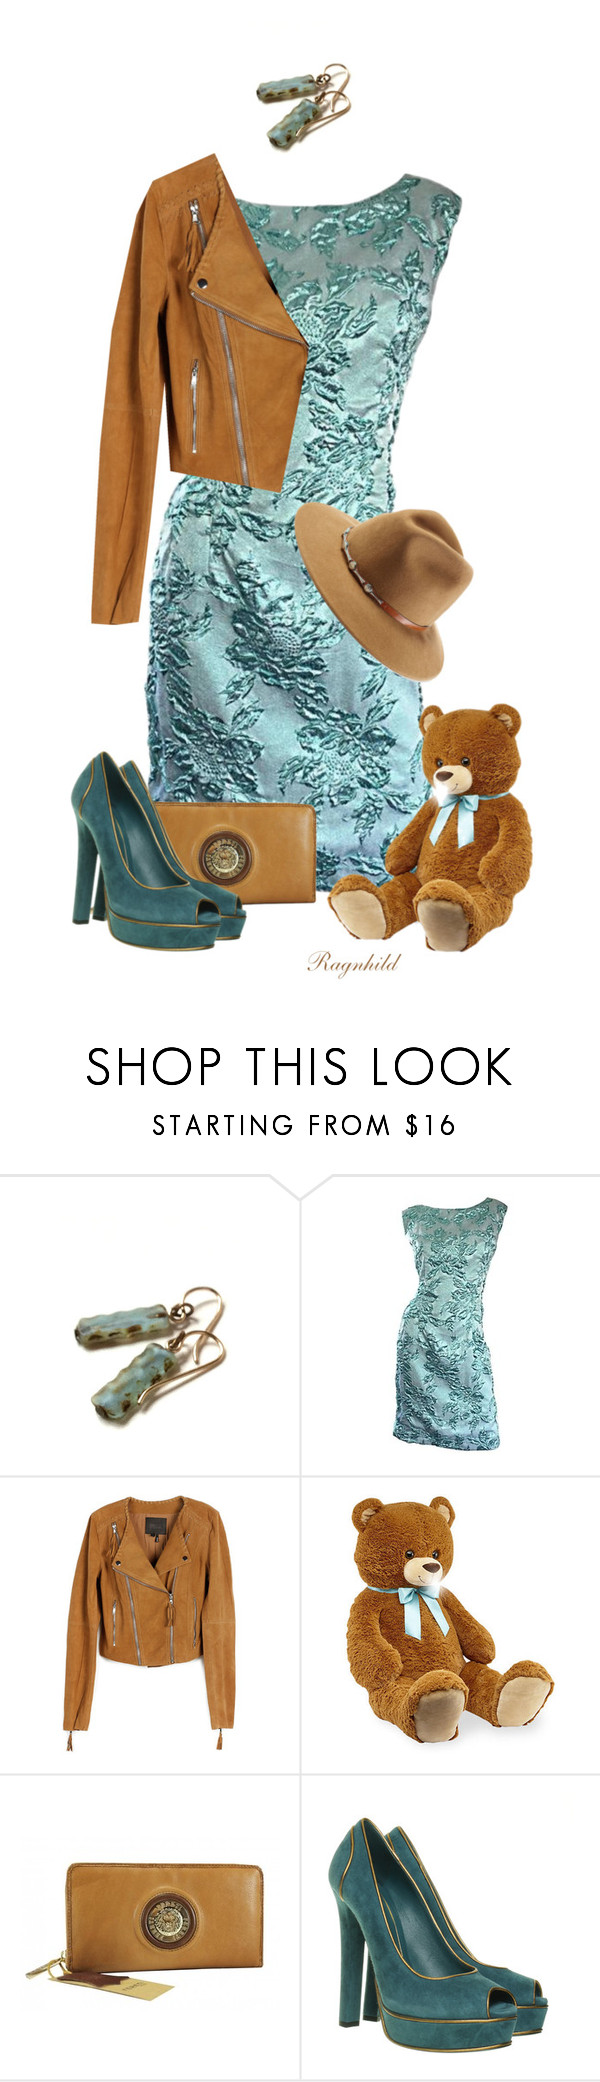 """Teal & Brown"" by ragnh-mjos ❤ liked on Polyvore featuring Paige Denim, Gucci and ále by Alessandra"